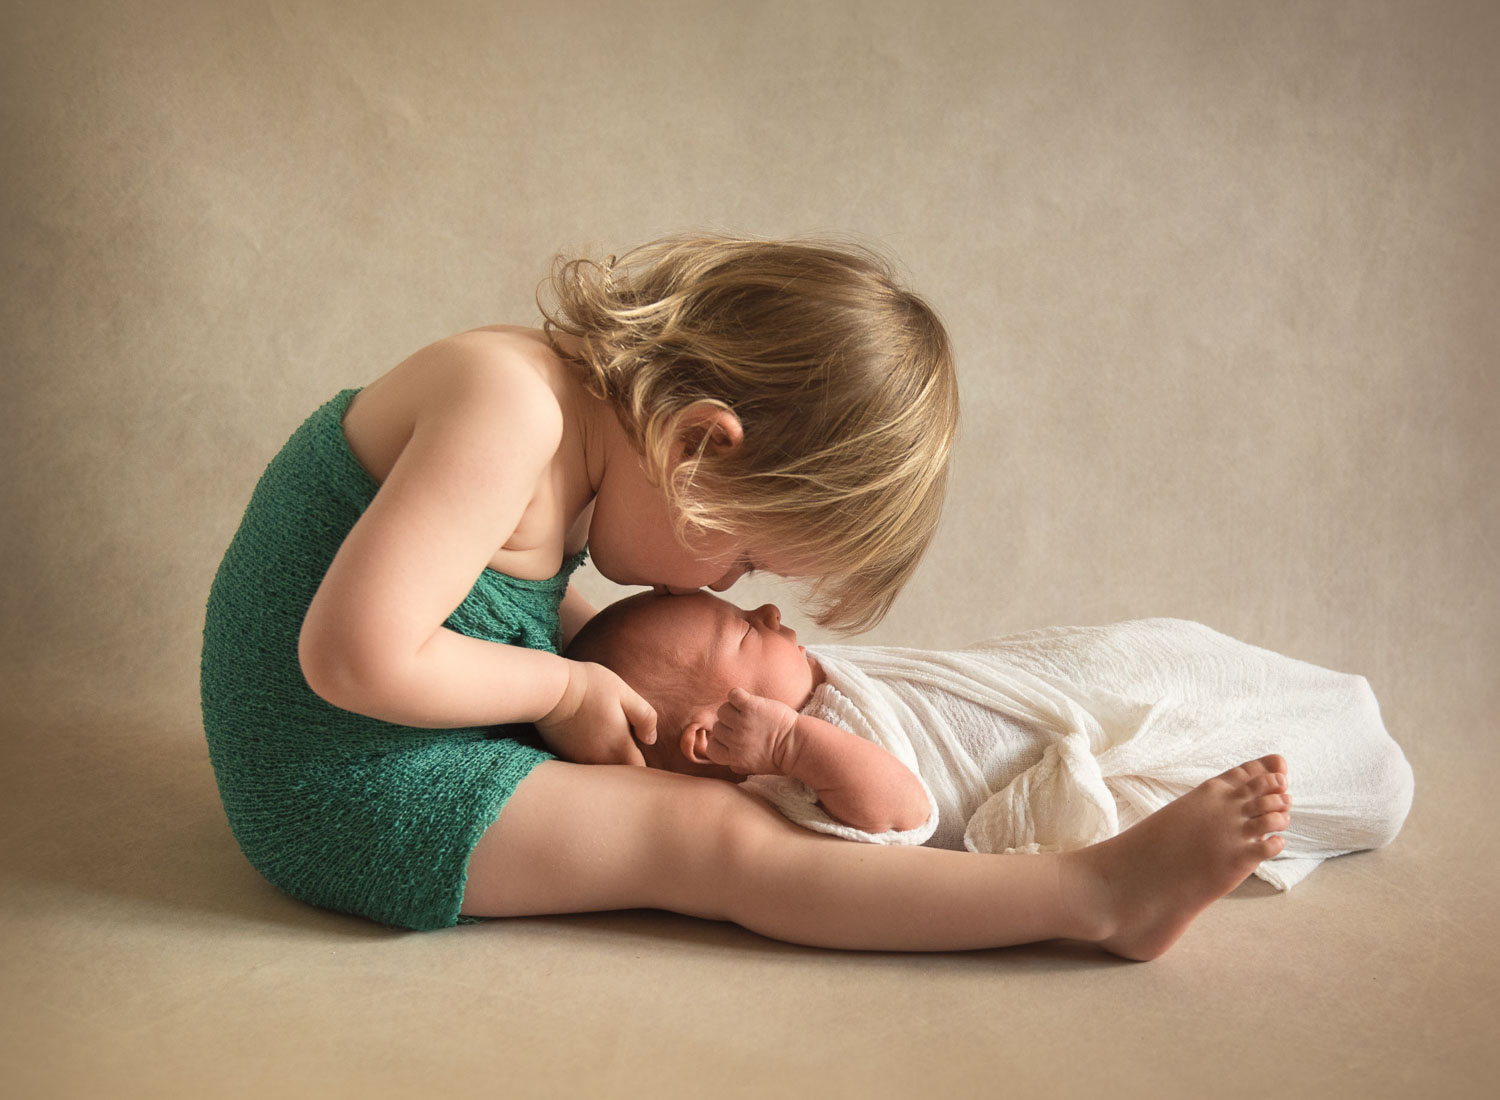 photo of baby and sibling by auckland newborn photographer